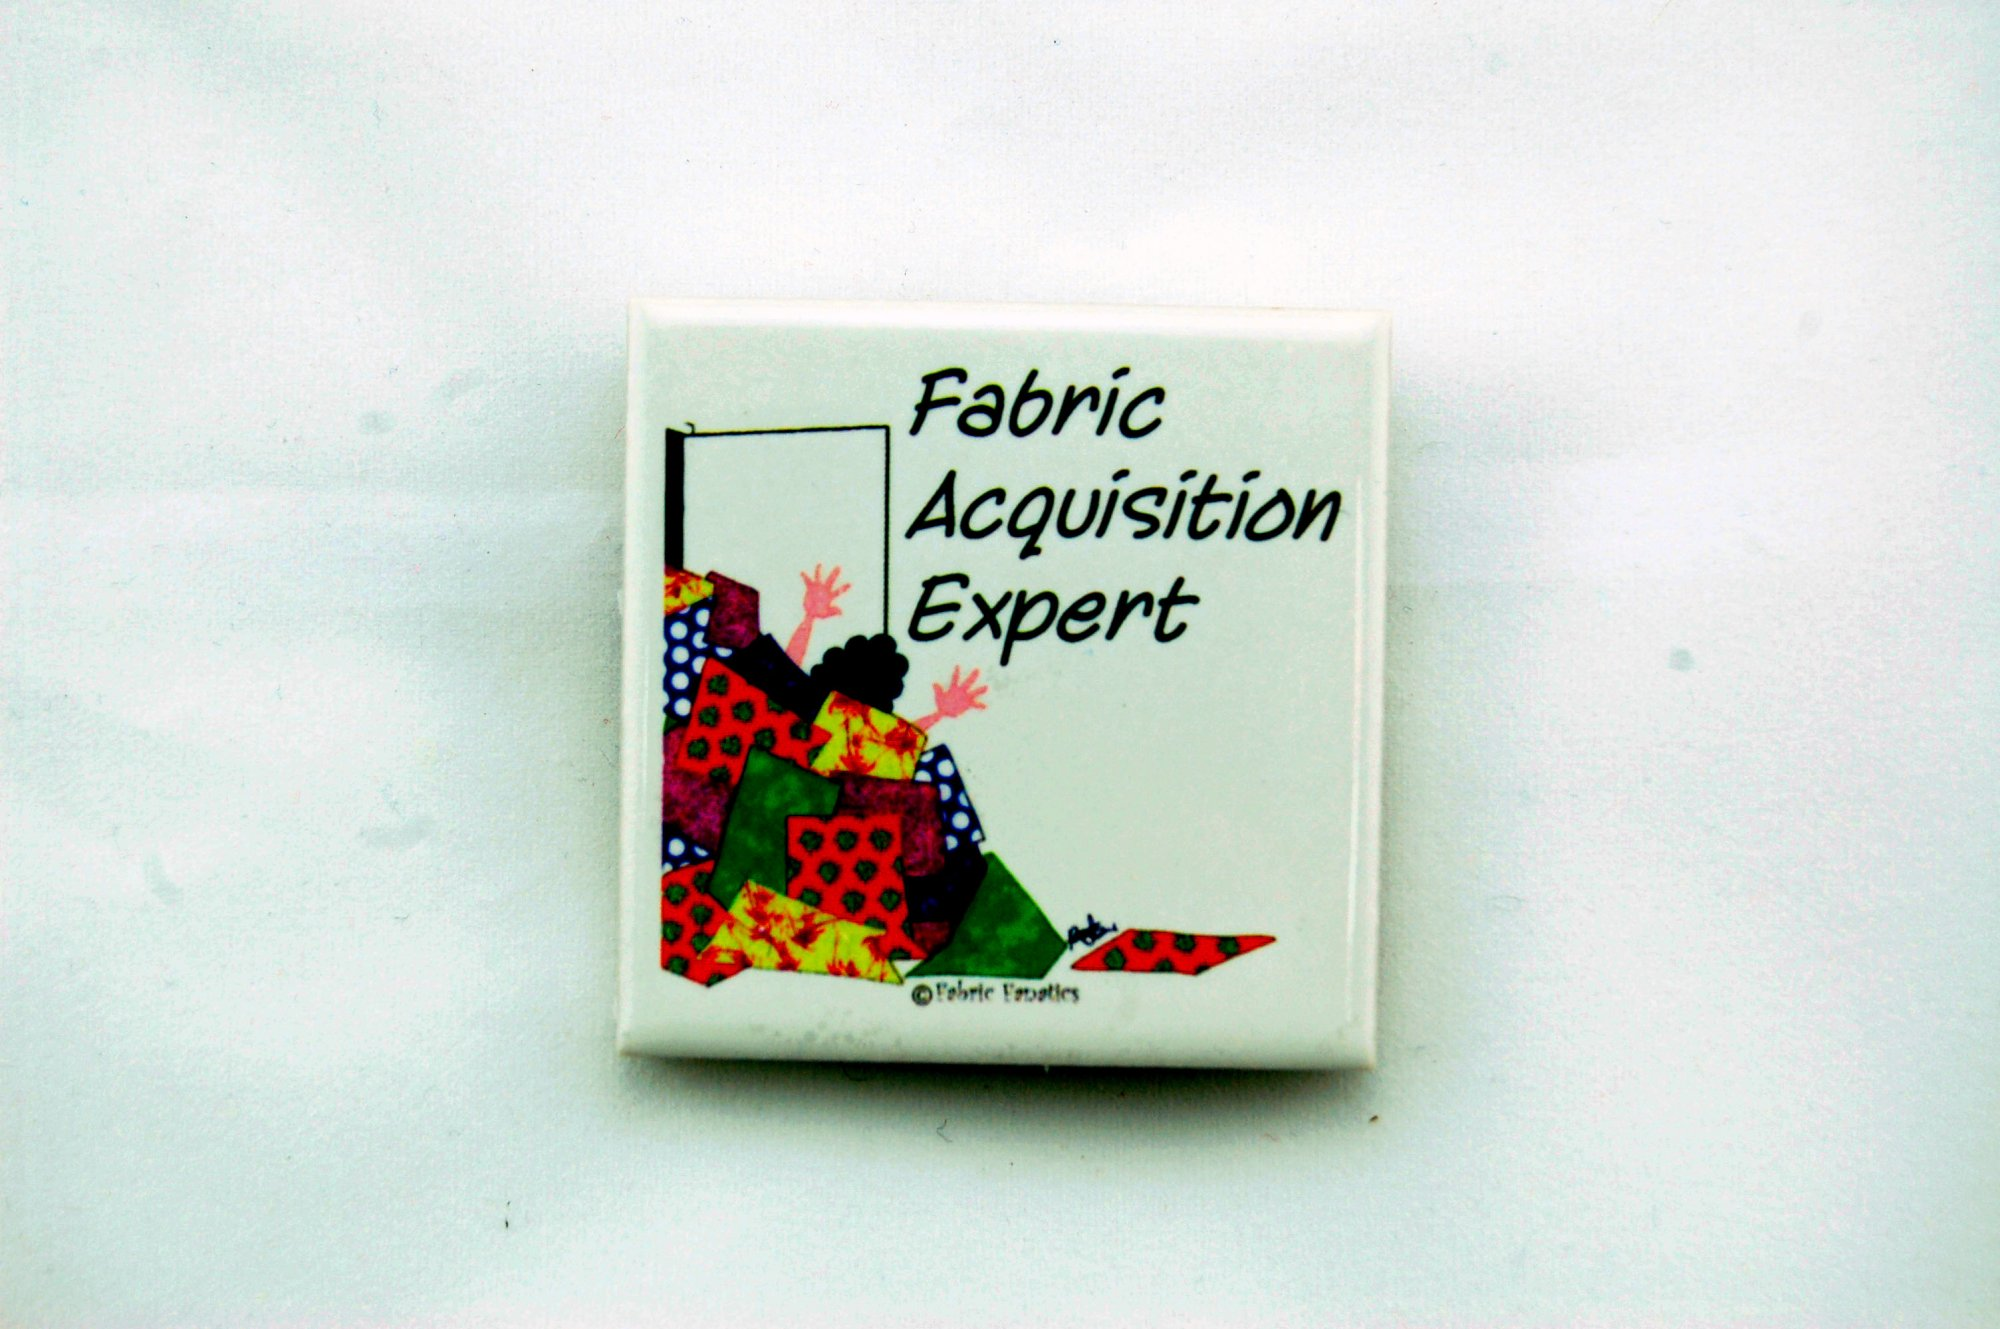 Fabric Acquisition Expert Magnet